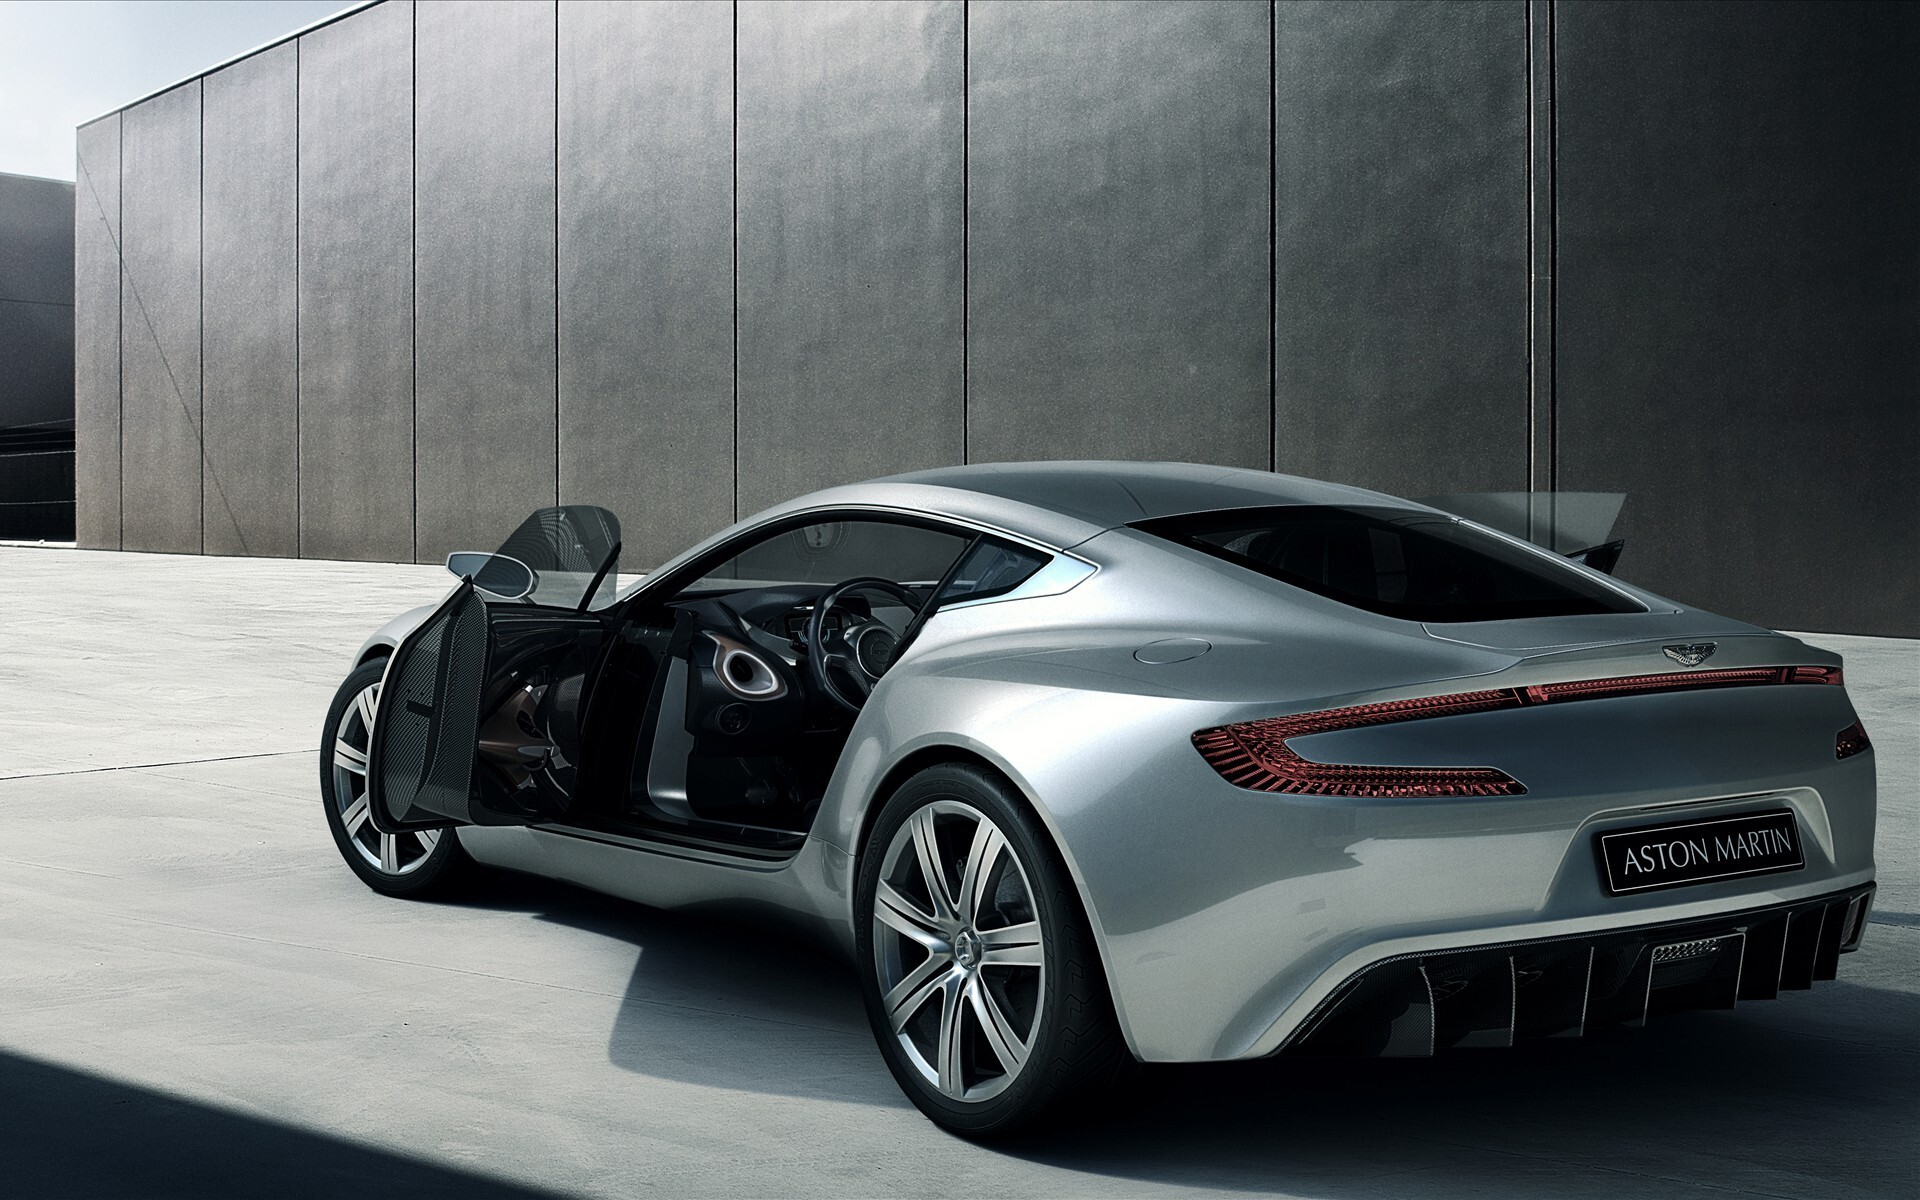 aston martin luxury two seater car hd wallpapers | hd wallpapers